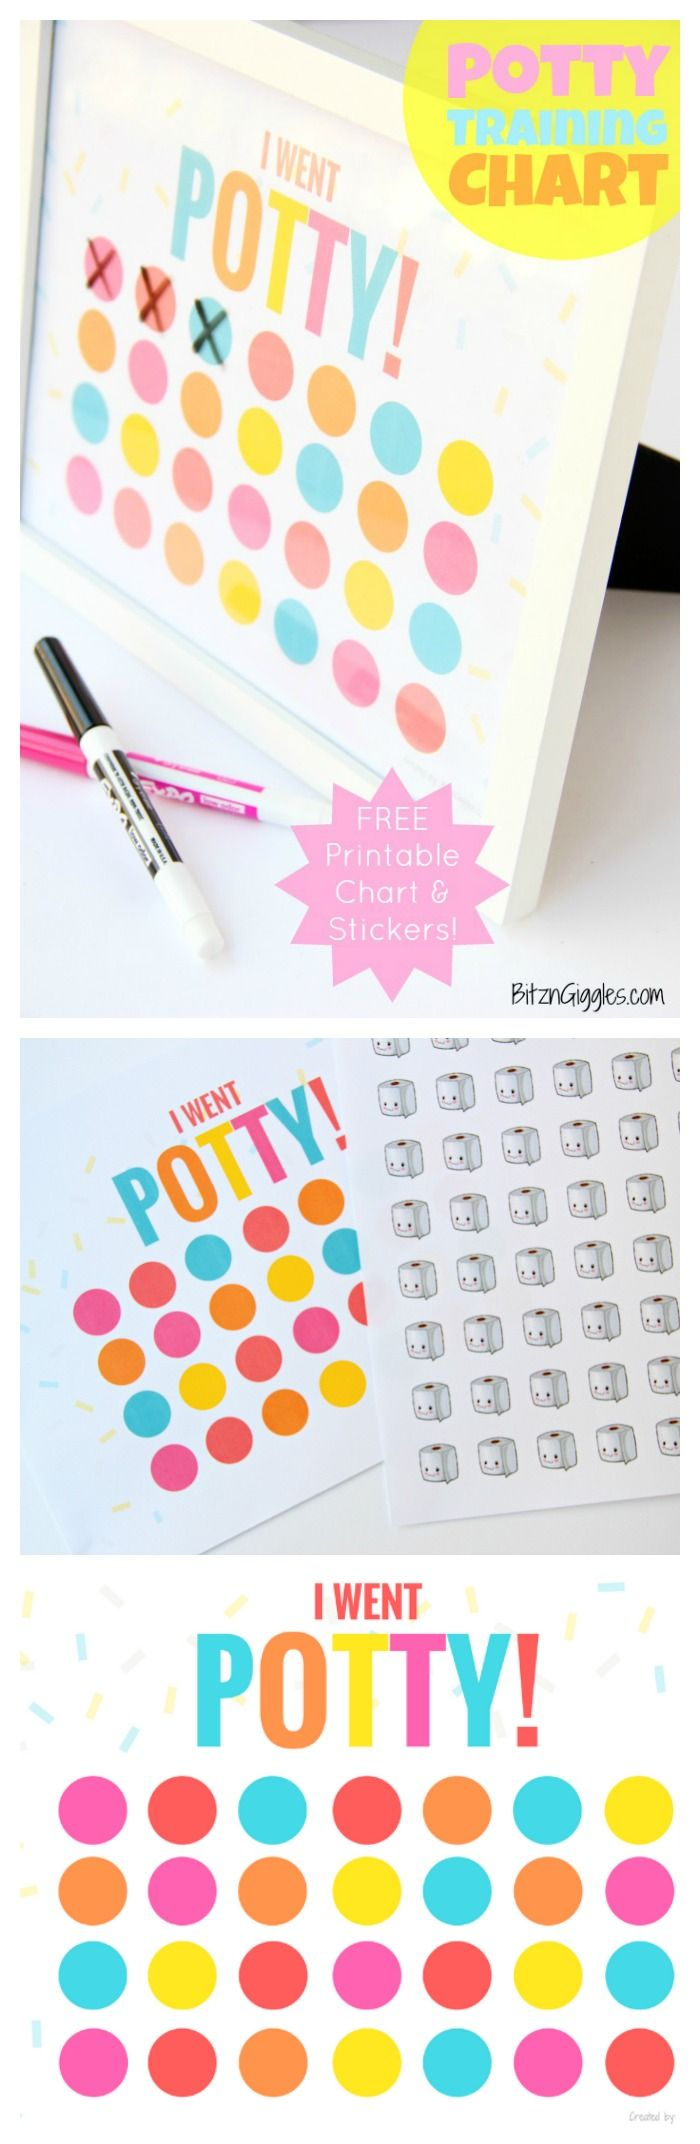 best ideas about potty charts potty sticker printable potty training chart